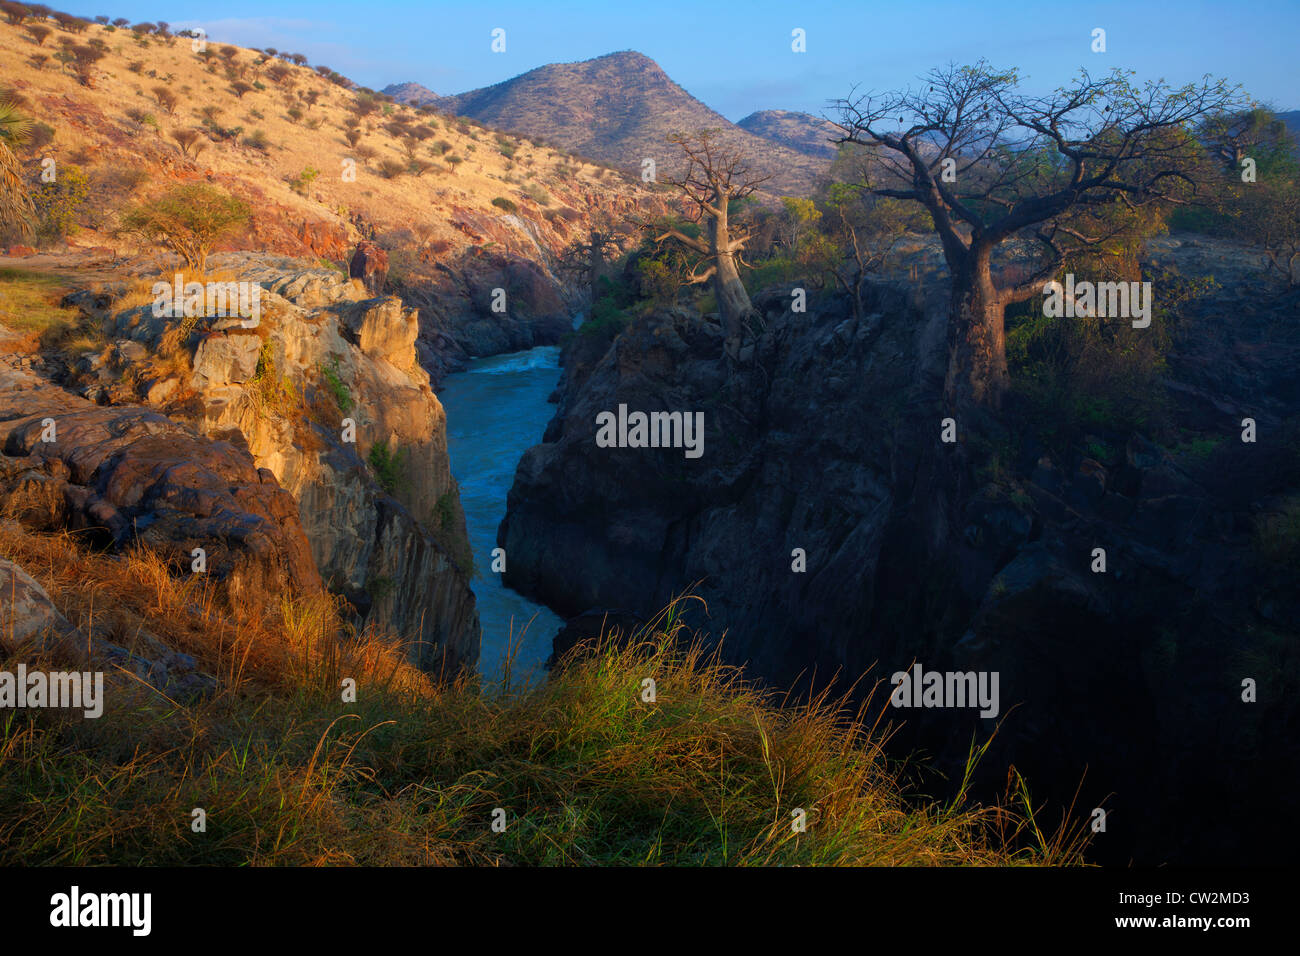 View Kunene River gorge downstream of Epupa Falls.Namibia - Stock Image